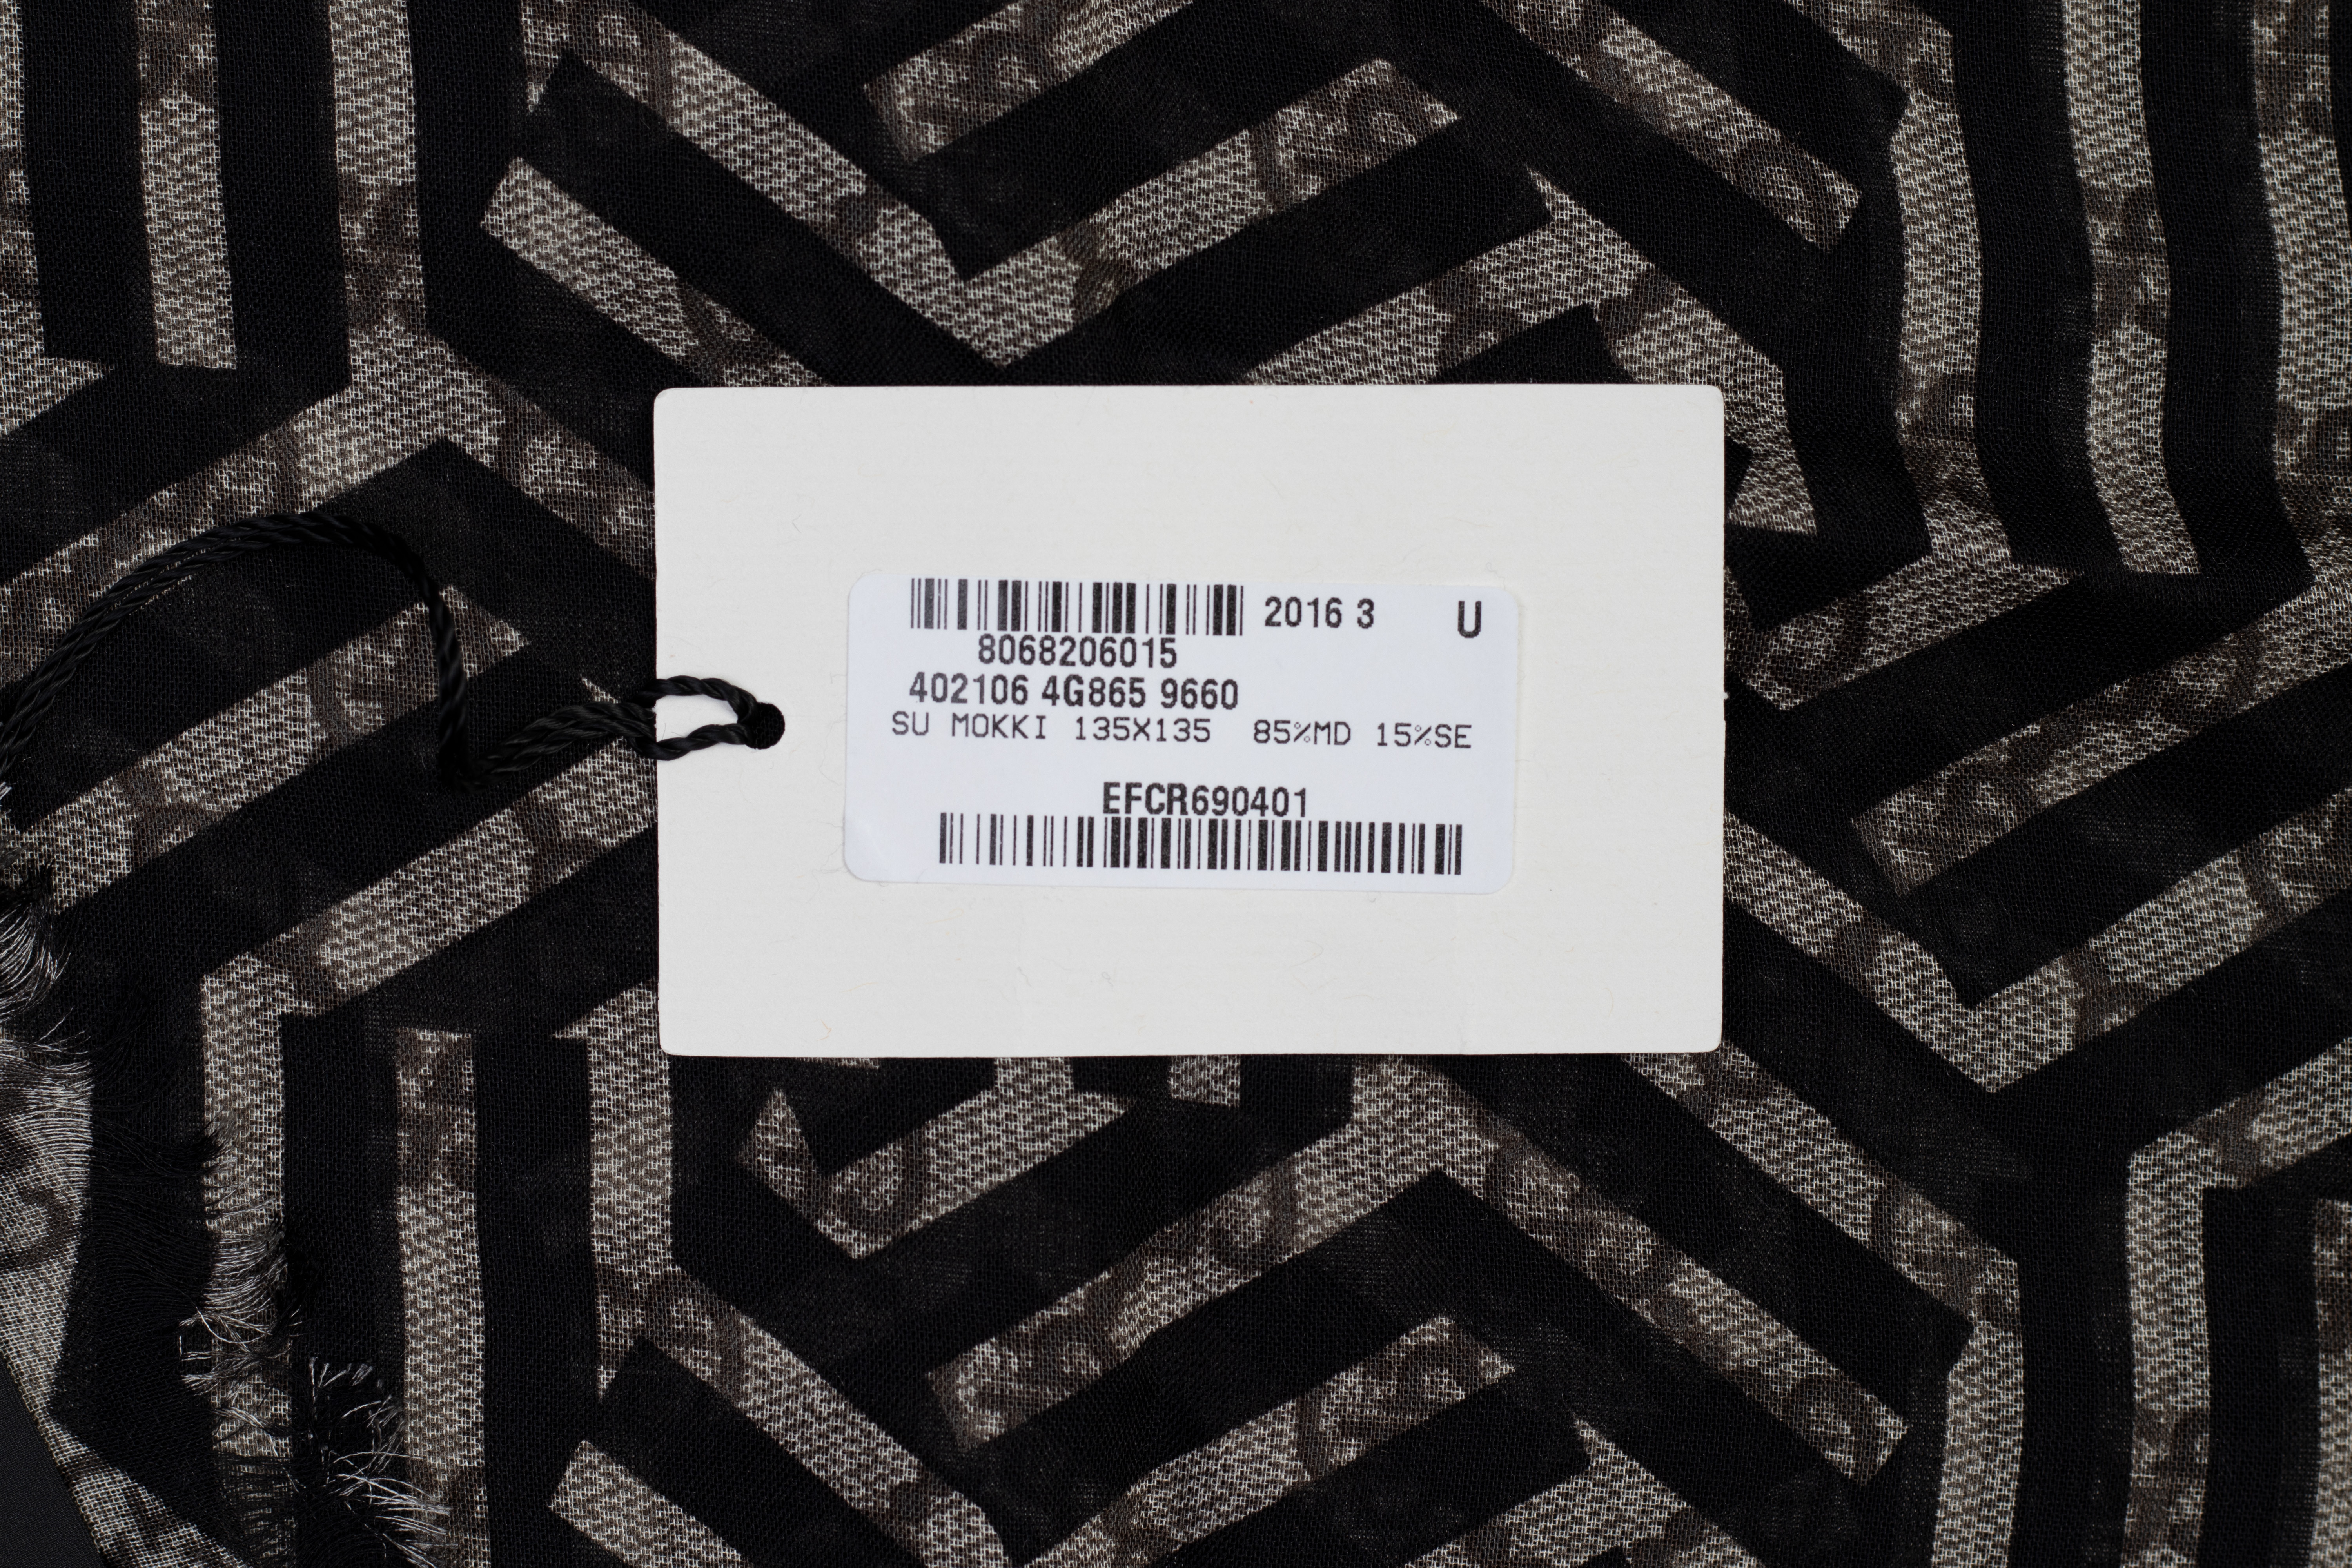 A GUCCI MONOGRAM SCARF - Image 3 of 6